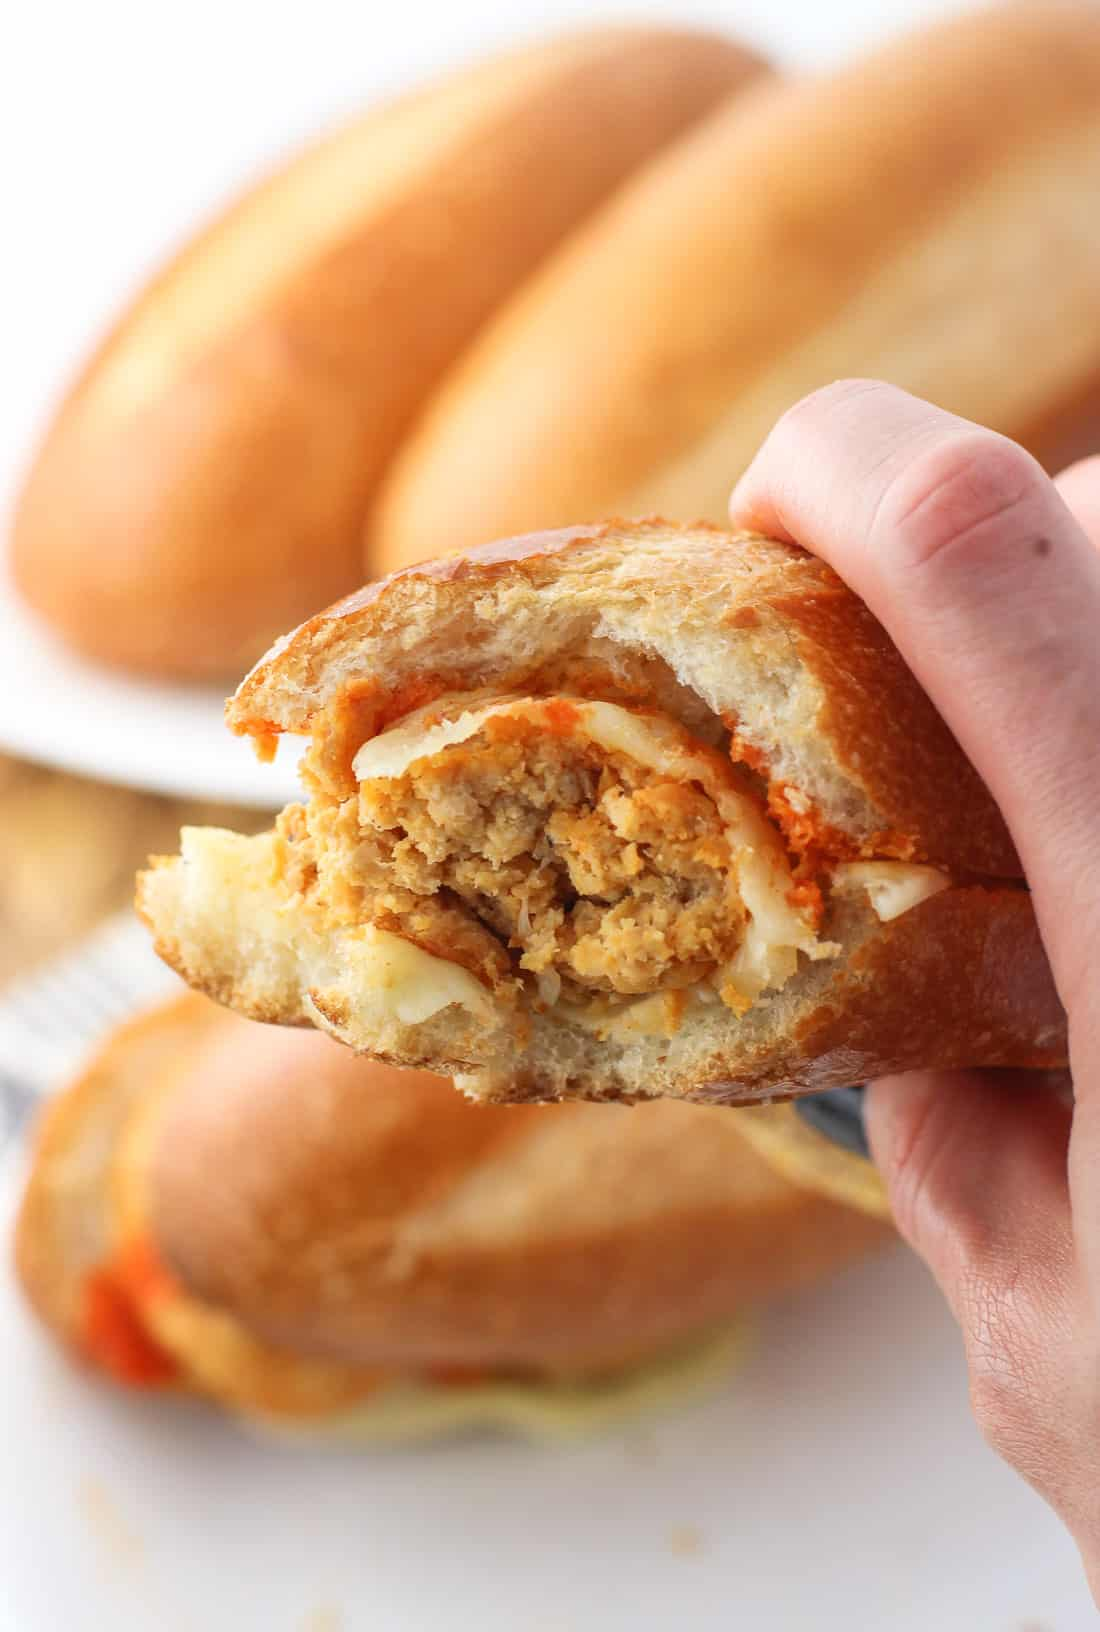 Buffalo chicken meatball subs will be your new comfort food favorite! Ground chicken is mixed with buffalo sauce, breadcrumbs, cheese, and spices for a batch of slightly spicy, juicy, and tender buffalo chicken meatballs. Delicious on a sub with provolone cheese!